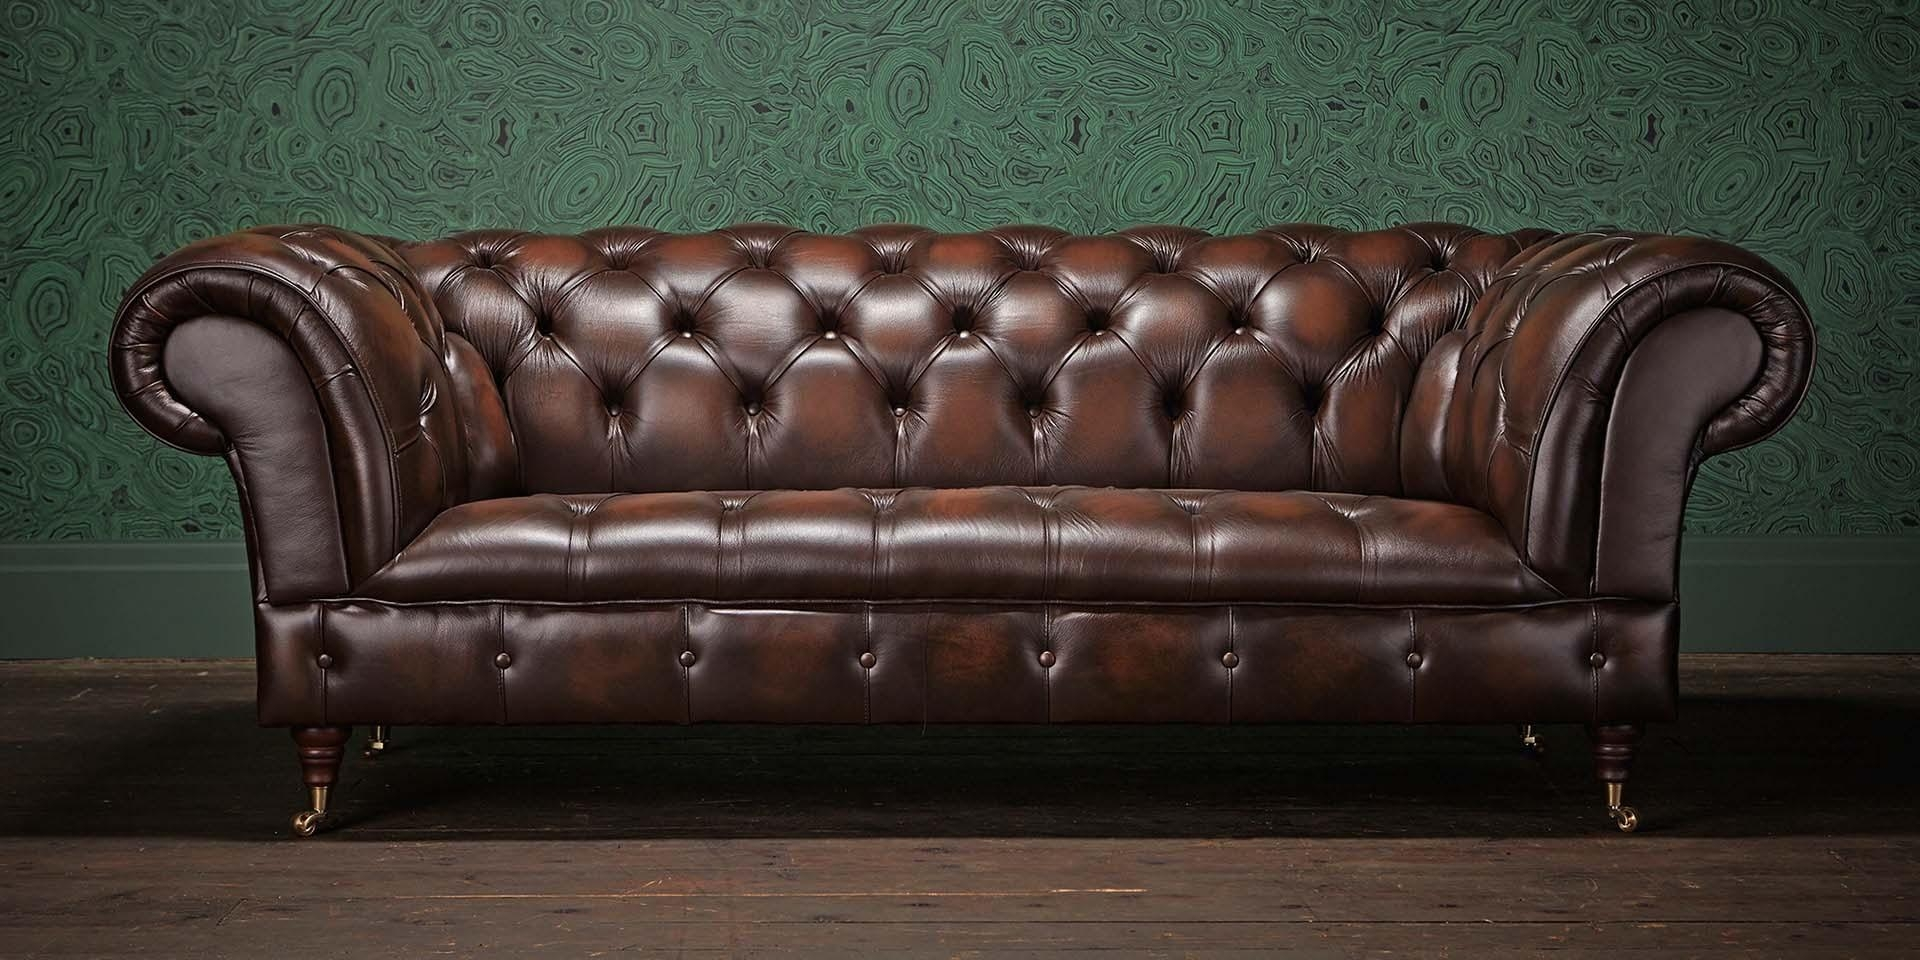 Chesterfields Of England | The Original Chesterfield Company For Chesterfield Sofas And Chairs (Image 10 of 20)